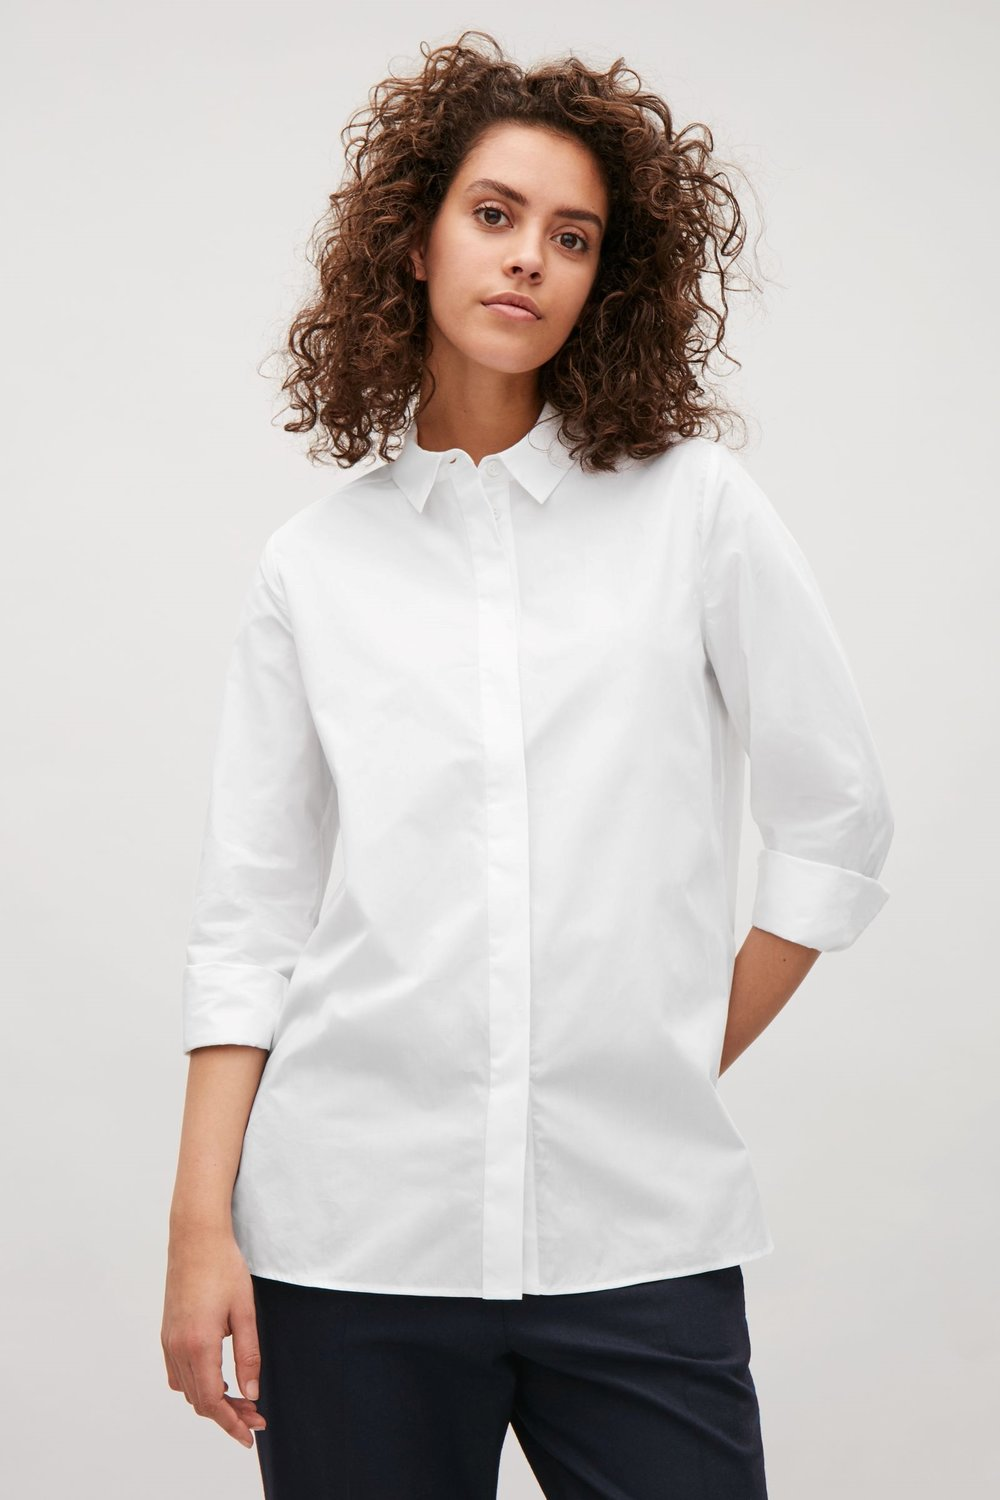 Cos Tailored Cotton Shirt, £55